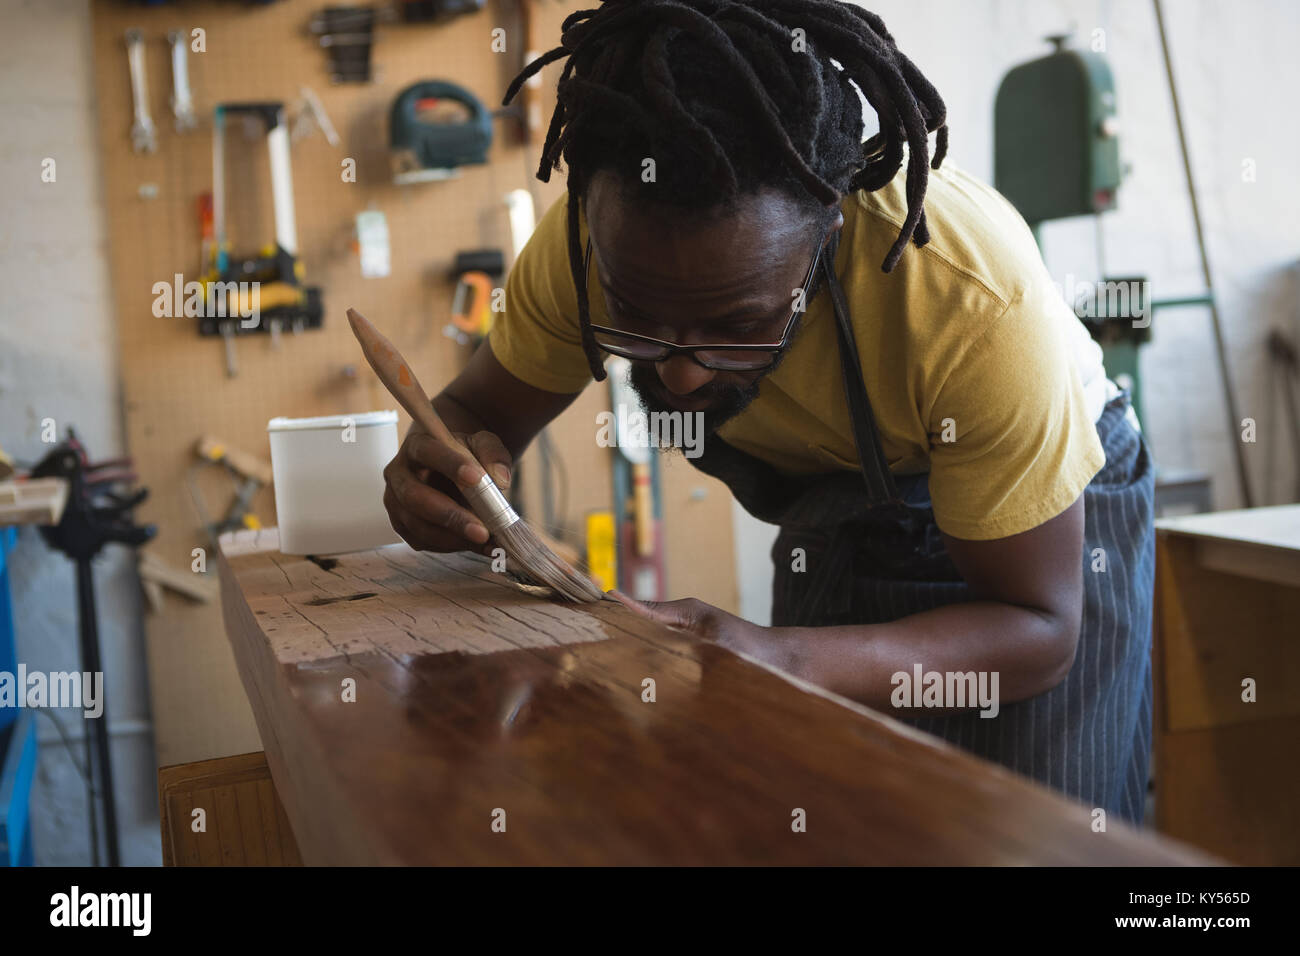 Carpenter painting wooden plank - Stock Image